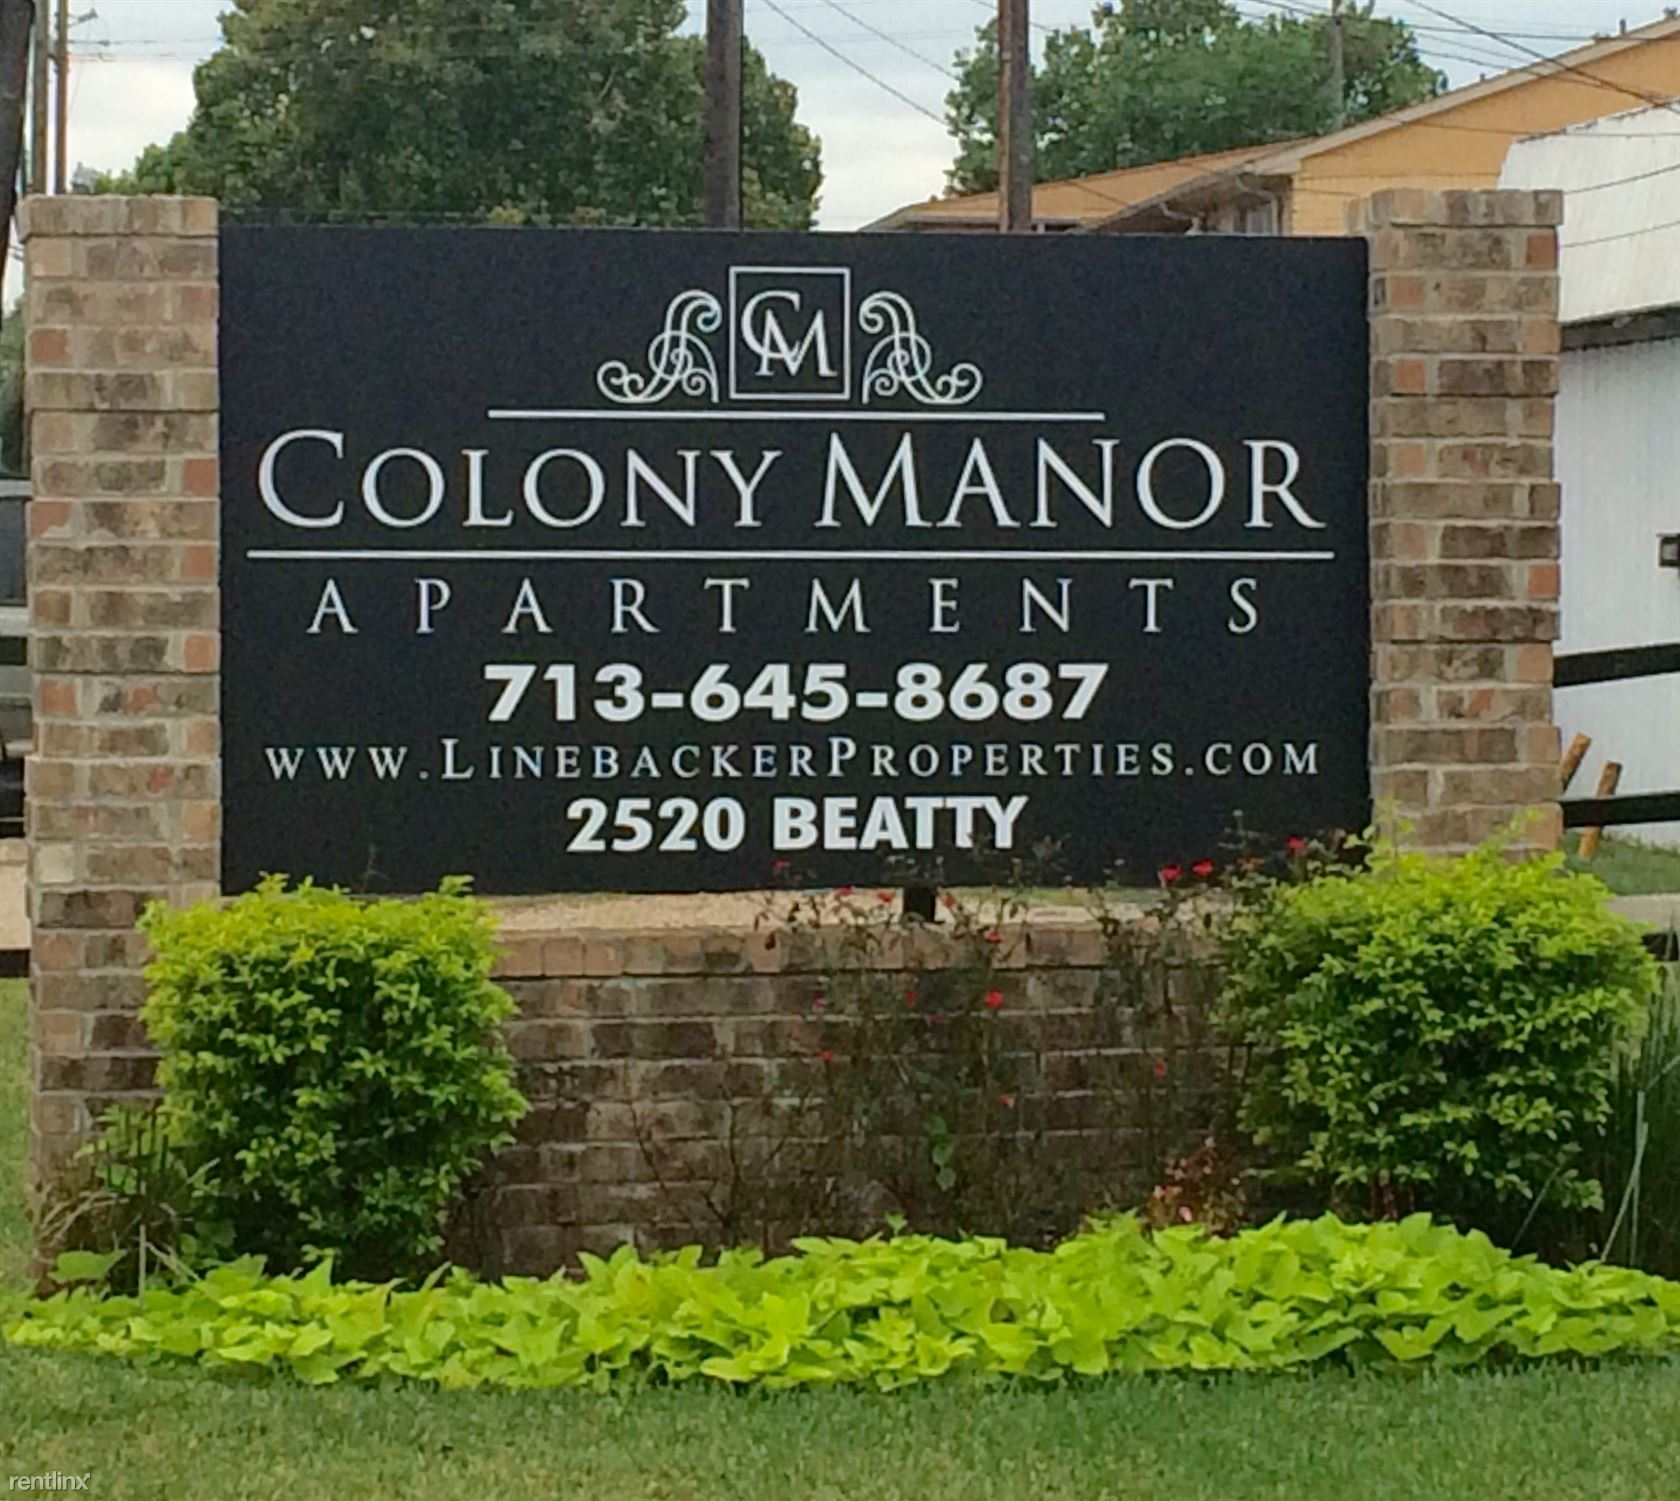 Colonial Manor Apartments: Colony Manor / Gatehouse Apartments, Houston